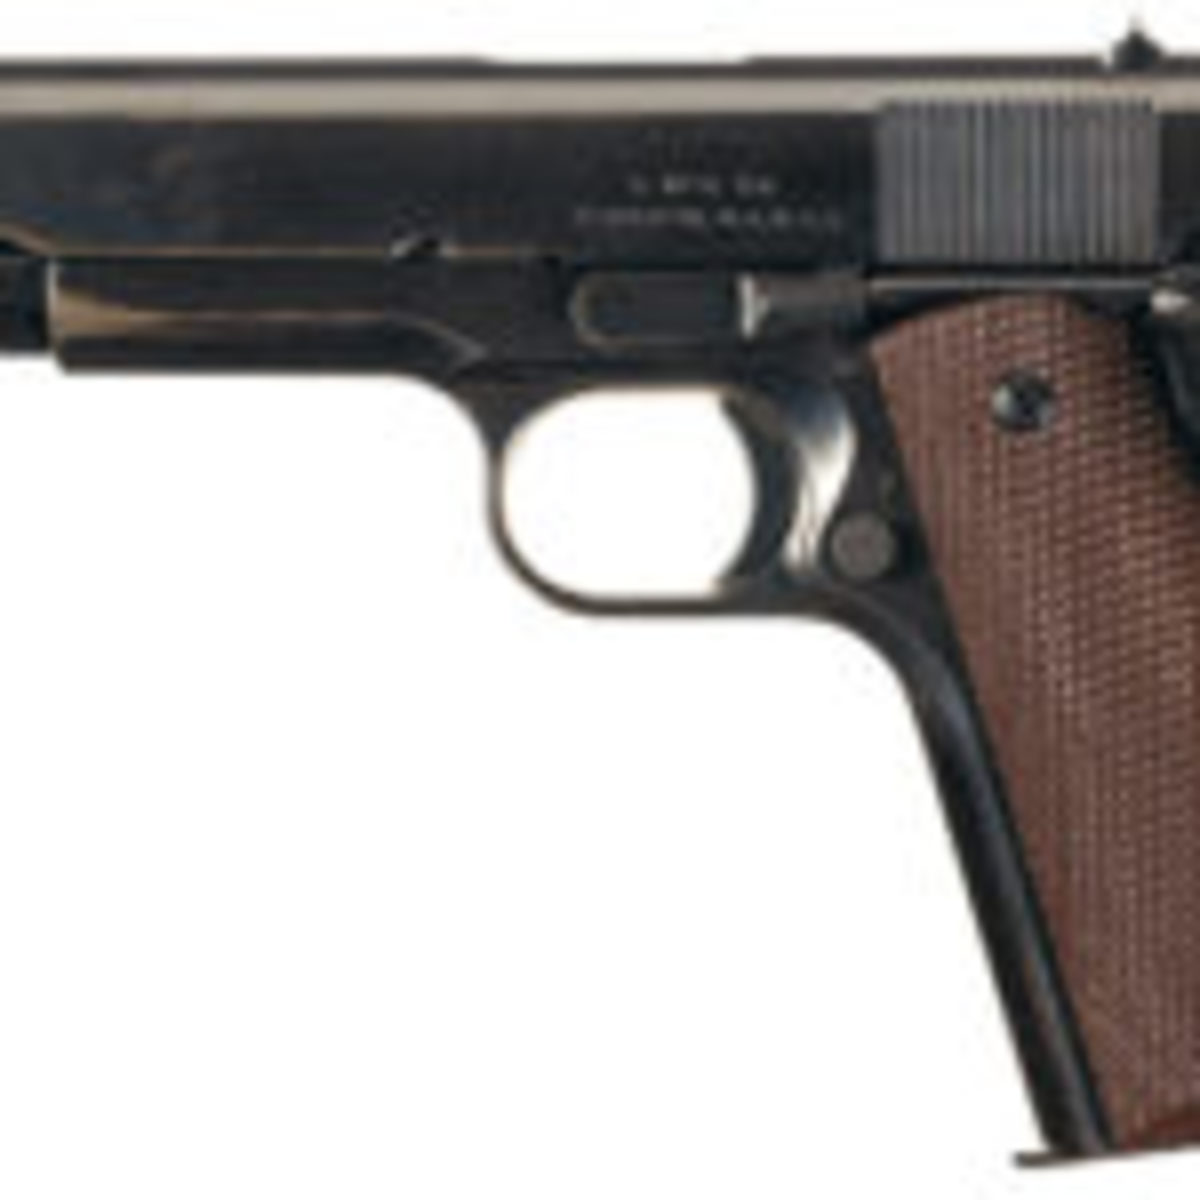 Rare World War II Singer Manufacturing Company U.S. Model 1911A1 semi-automatic pistol. Photo courtesy Rock Island Auction Co.